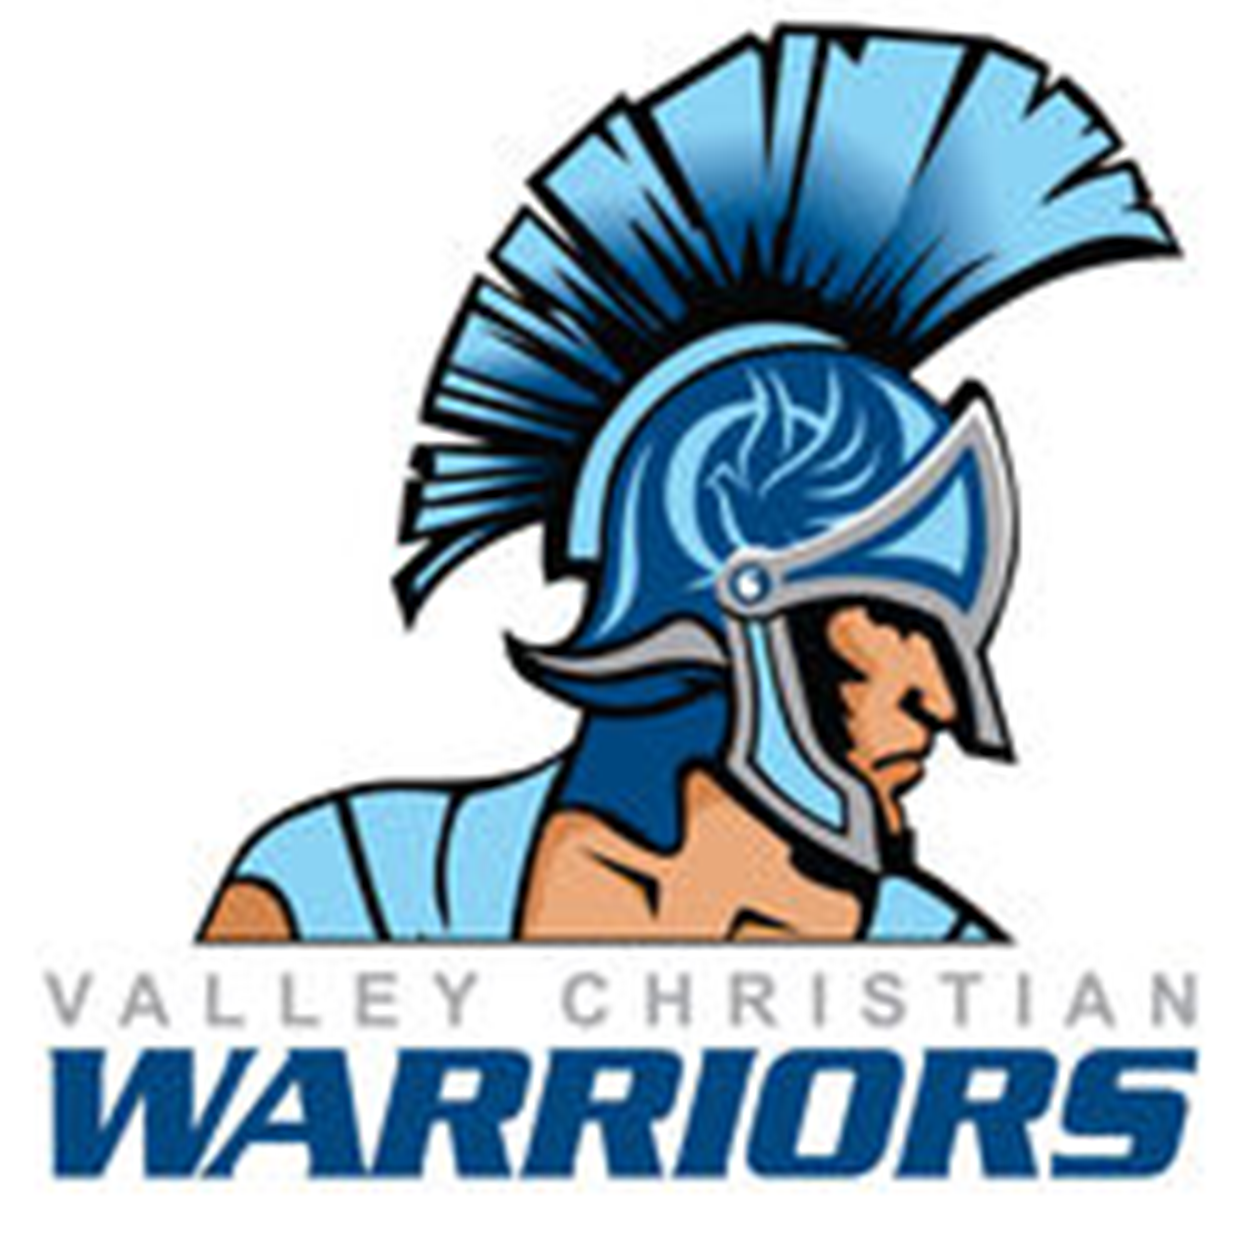 Willamette Valley Christian